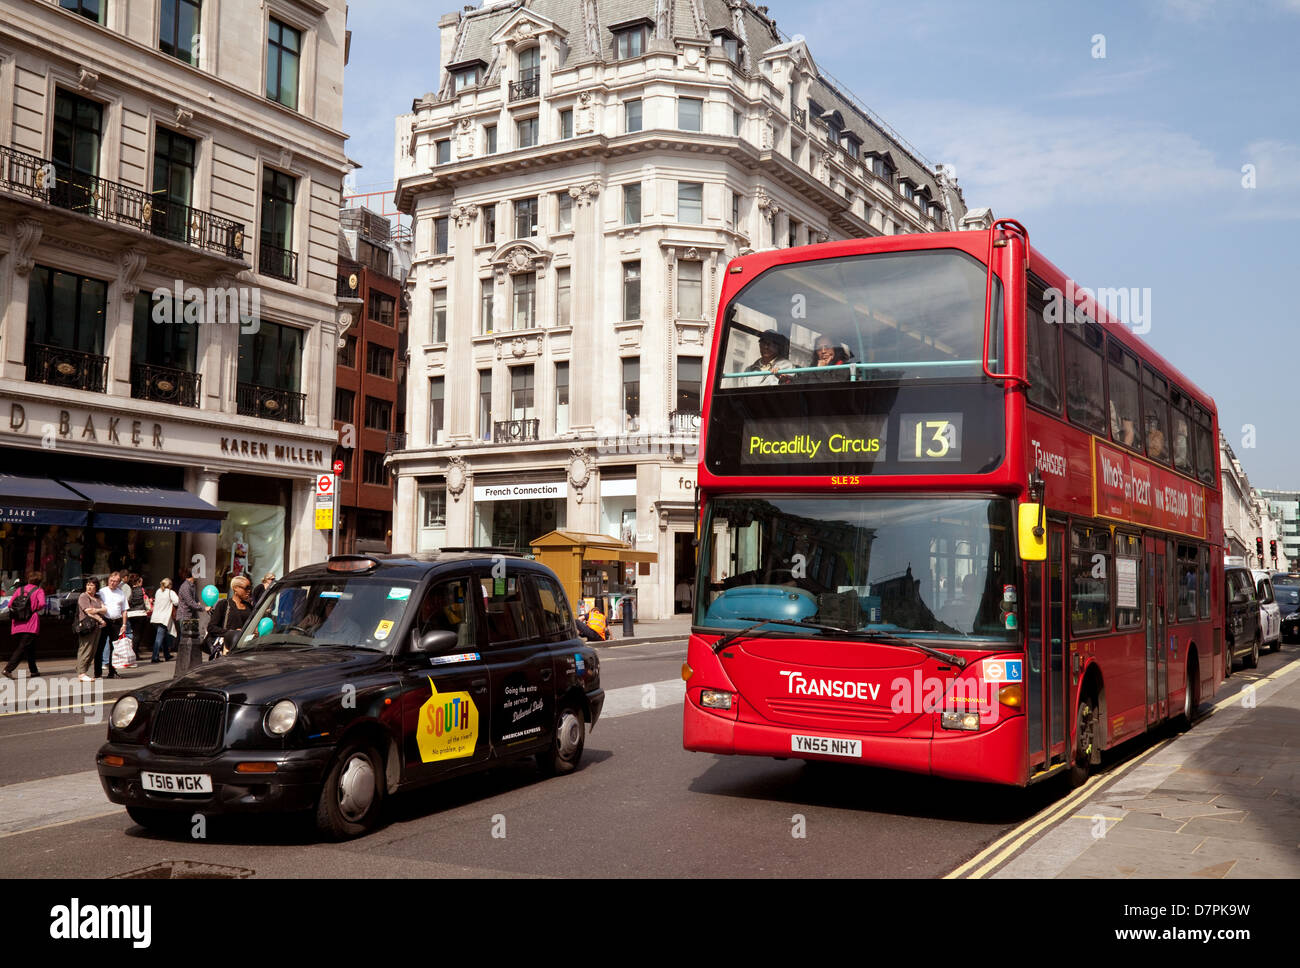 London bus and taxi, Regent Street scene, central London, UK - Stock Image